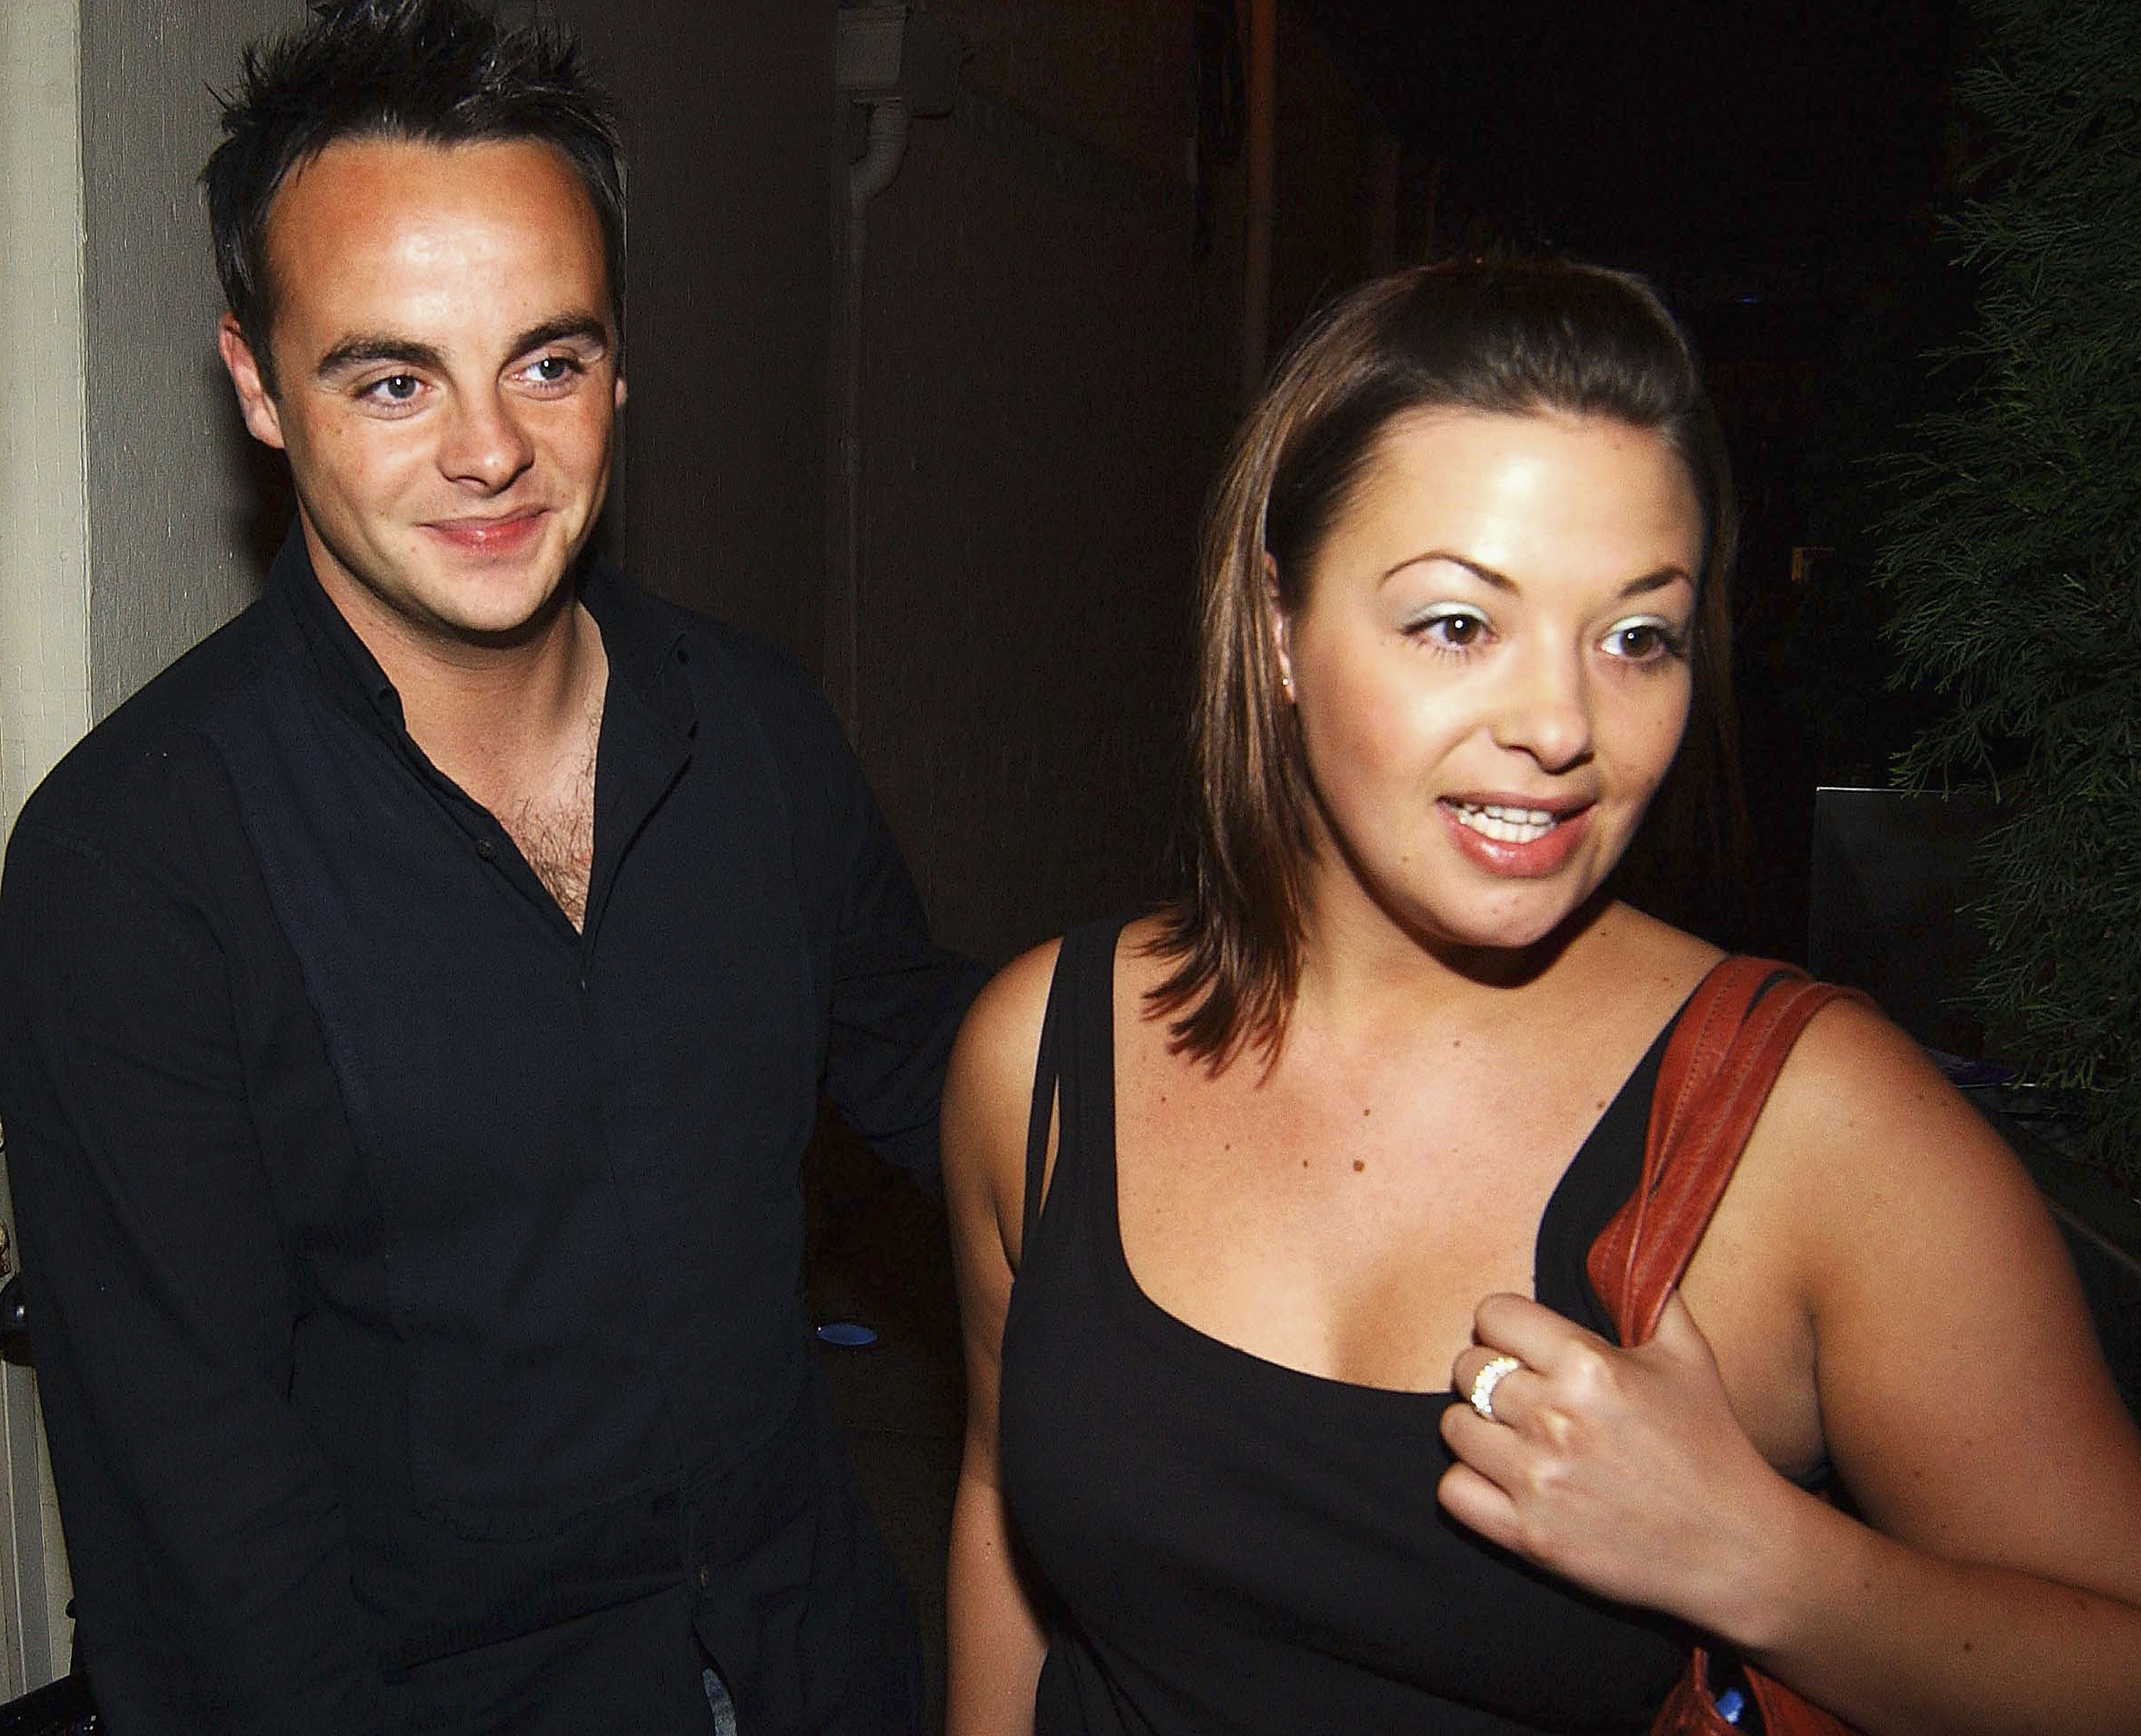 Lisa Armstrong and Ant McPartlin (Source: Getty Images)